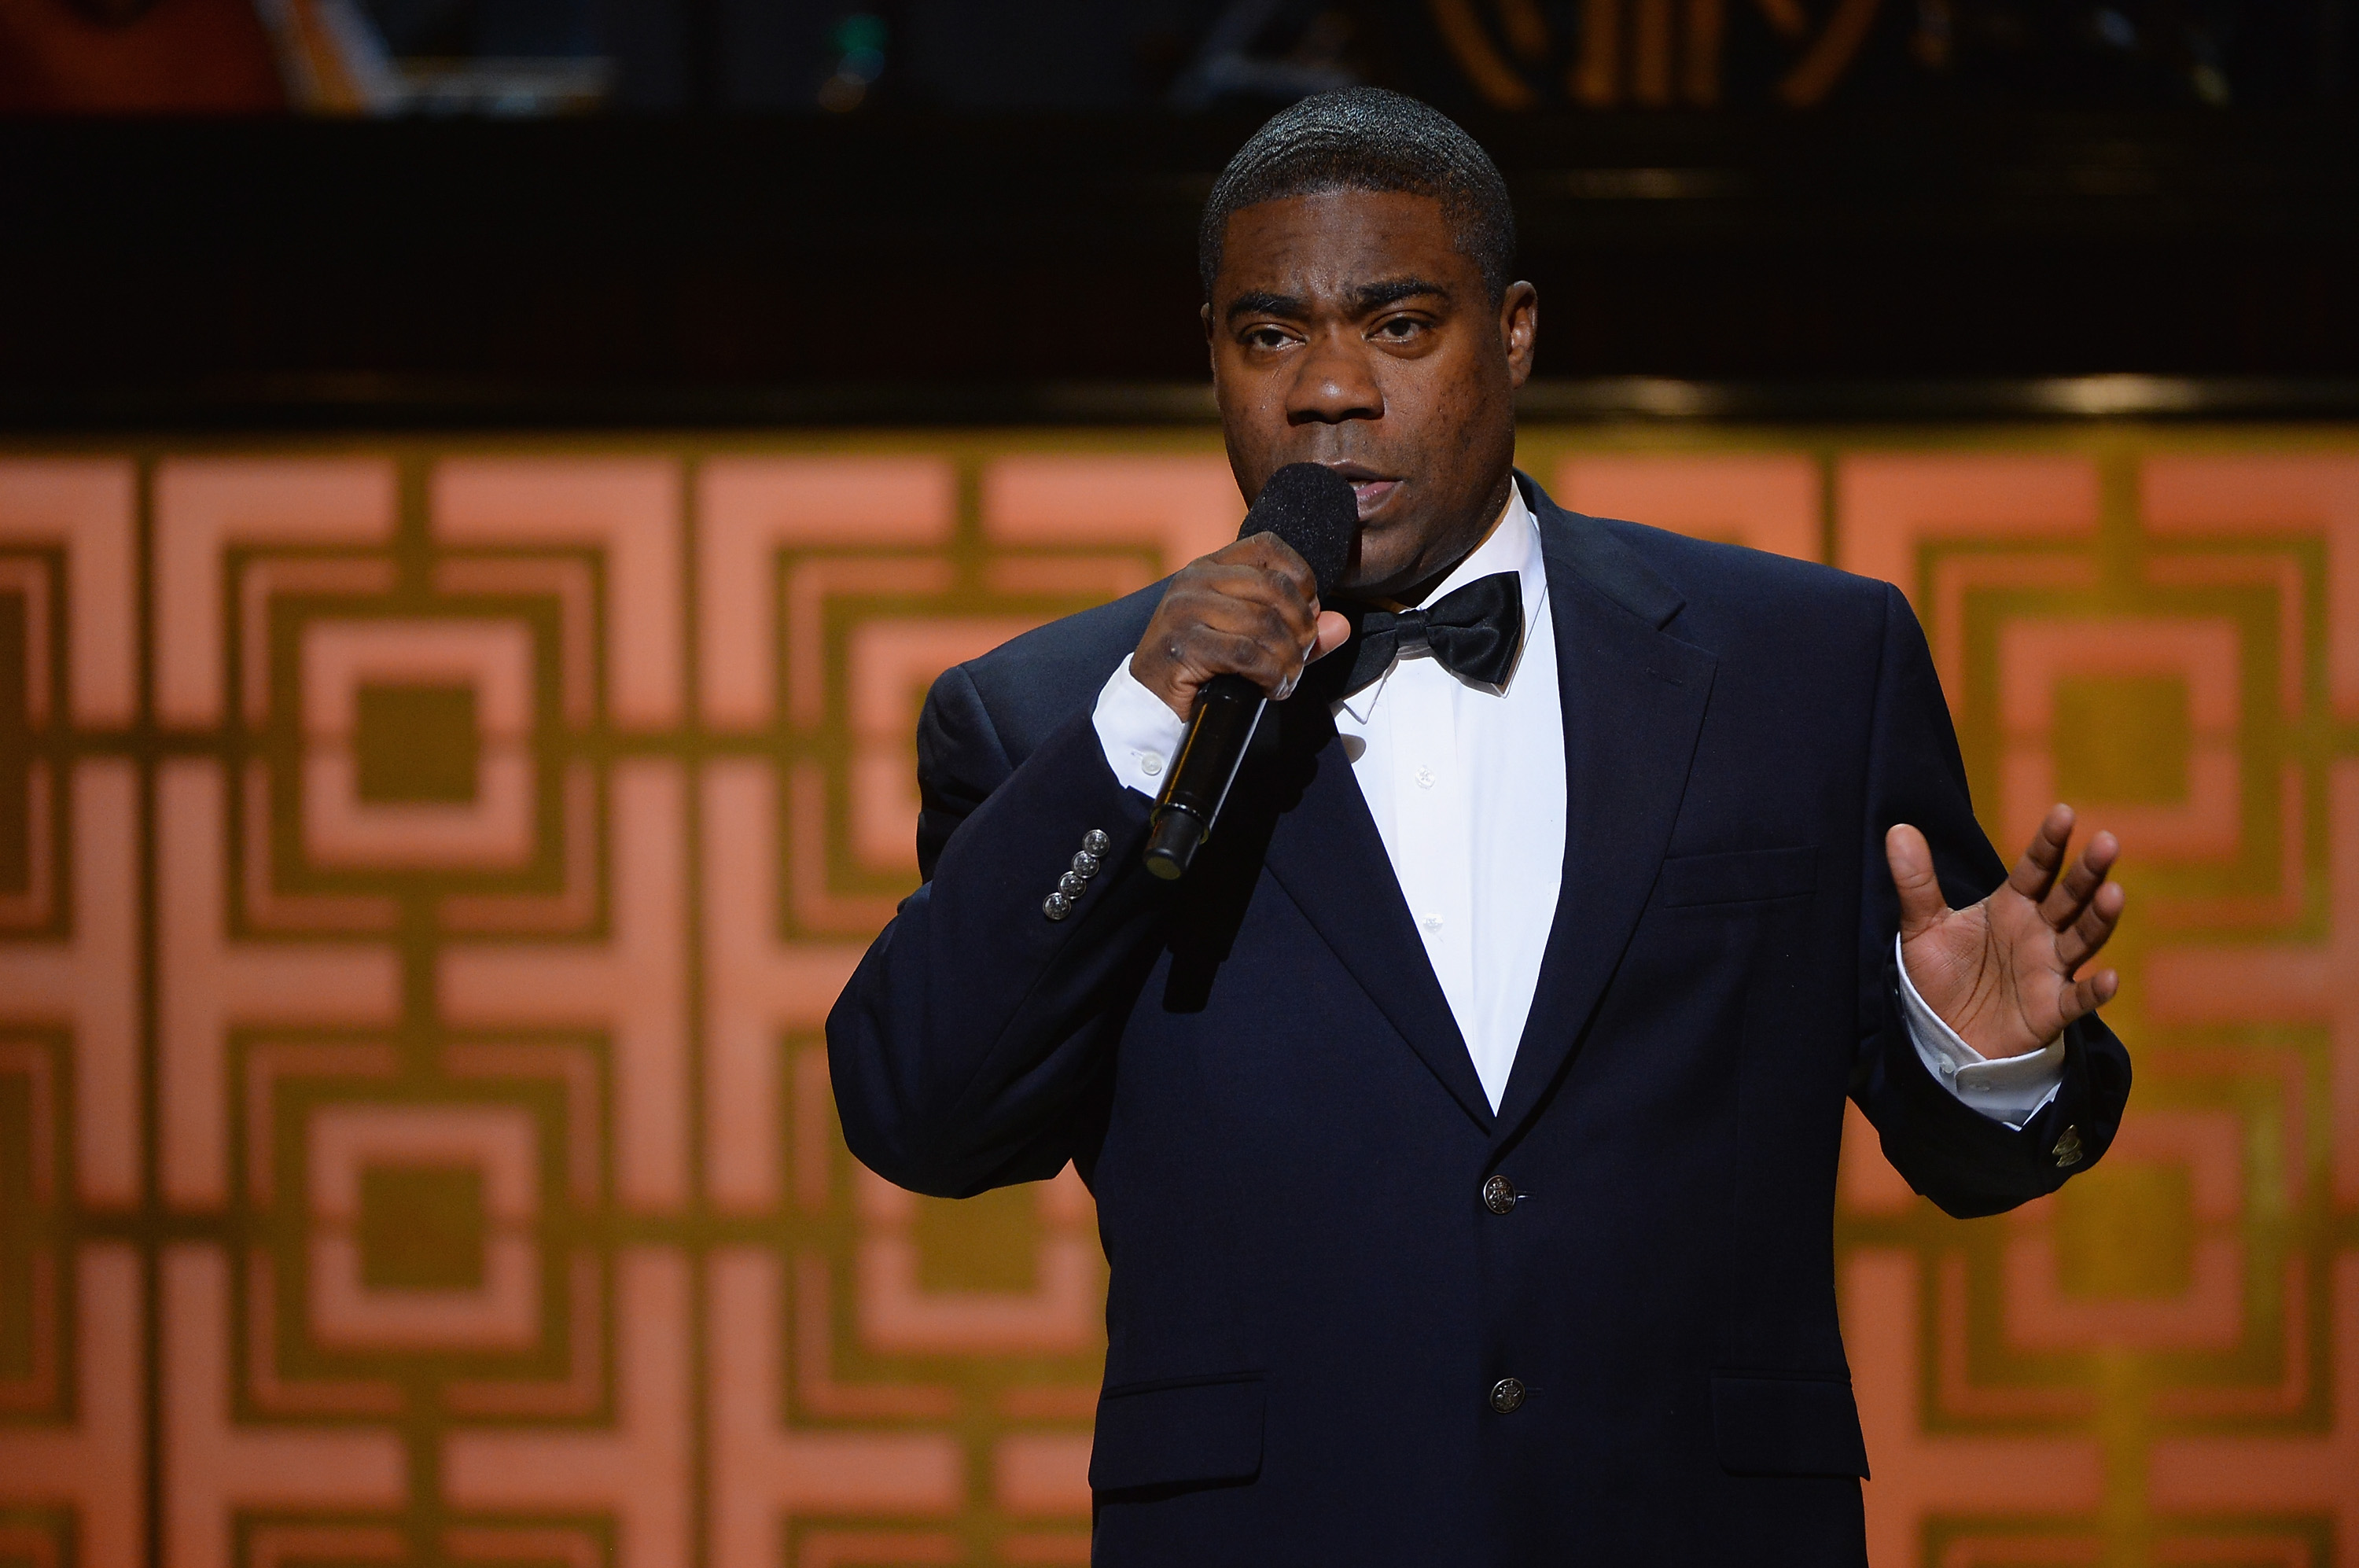 Tracy Morgan speaks onstage at Spike TV's  Don Rickles: One Night Only  on May 6, 2014 in New York City.